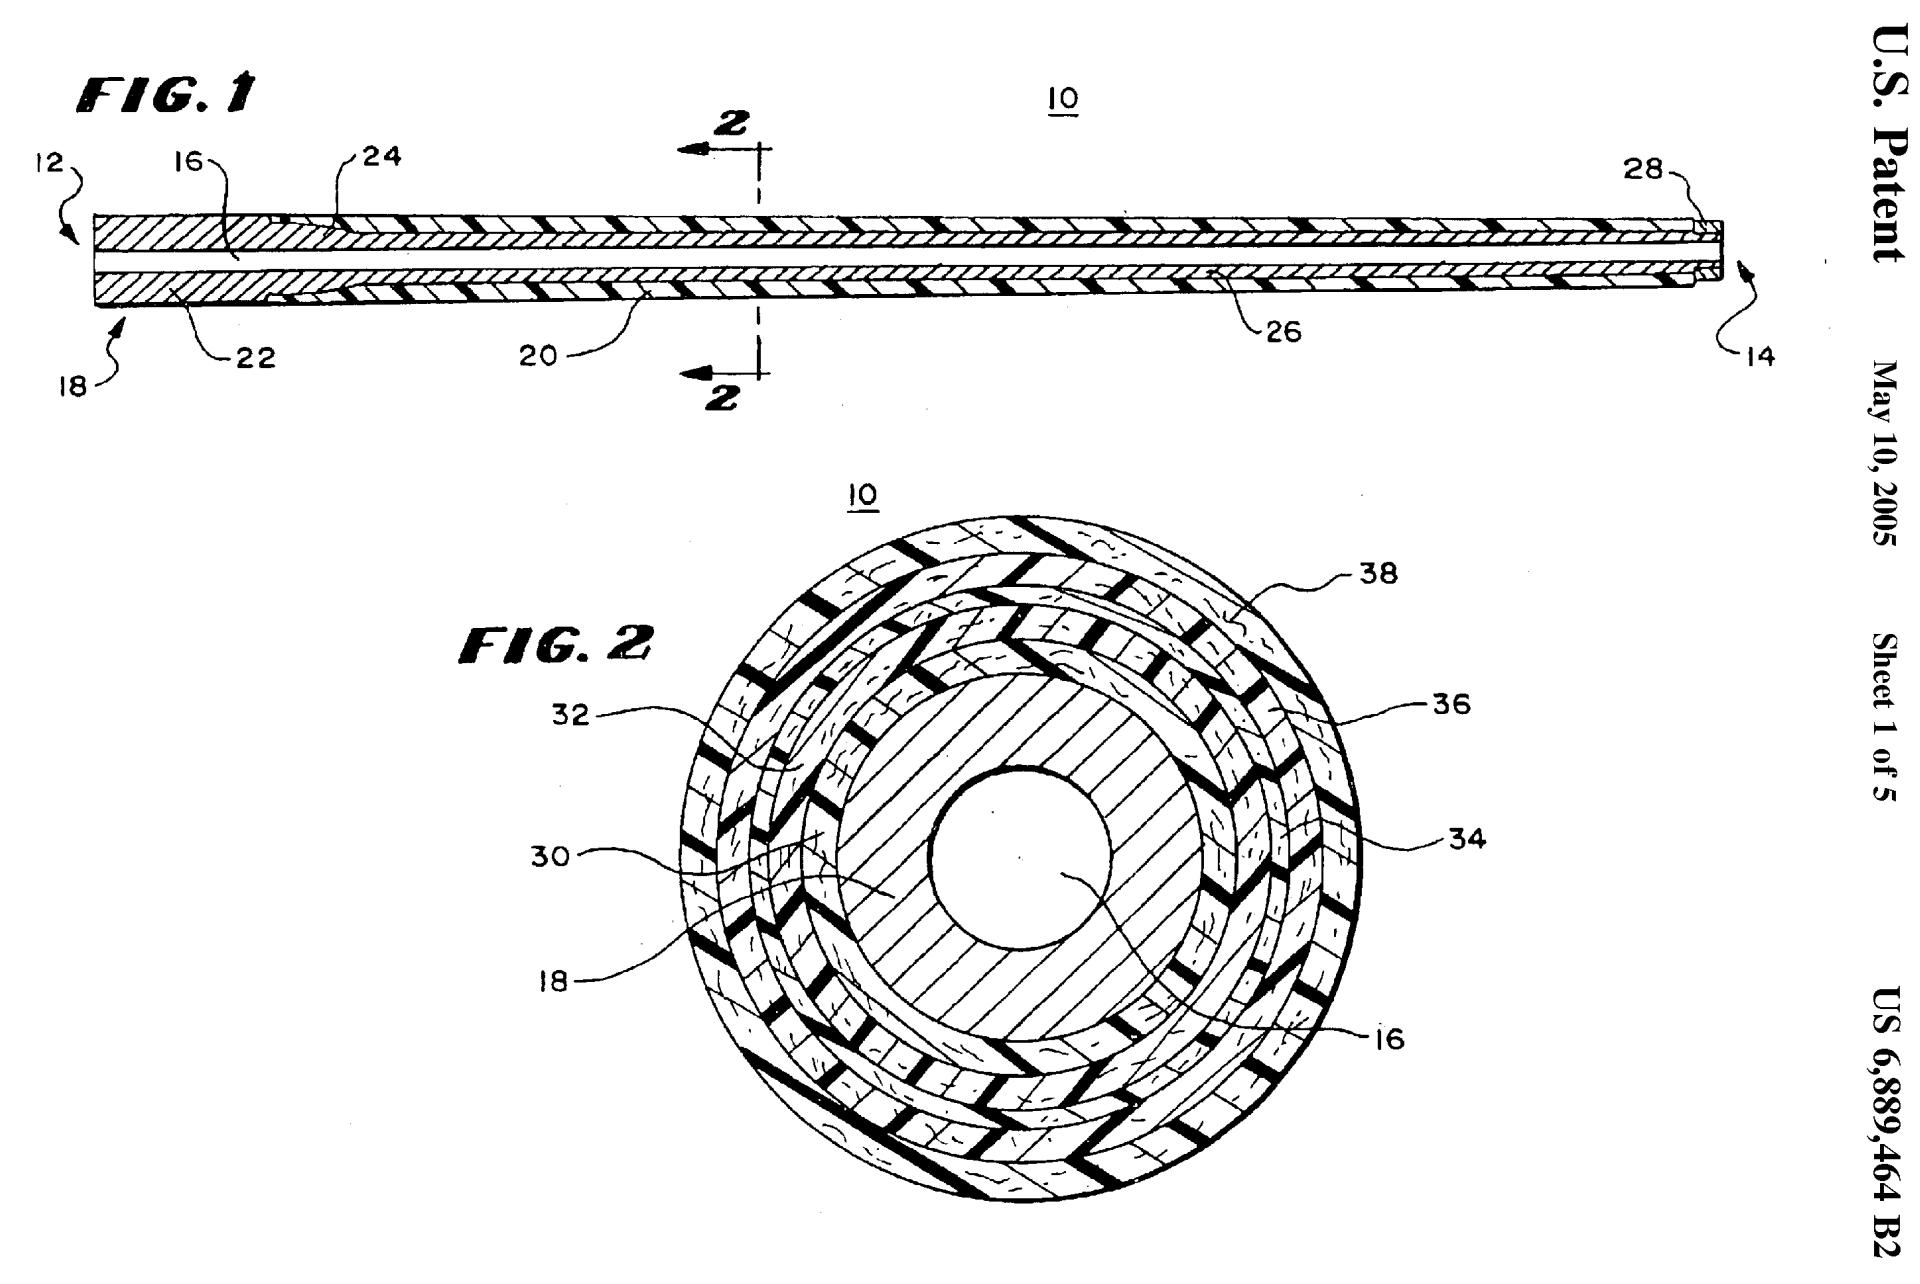 Proof Carbon Barrel Patent 6889464 Figures Showing How the Carbon Wrapping is Layered Around the Steel Core